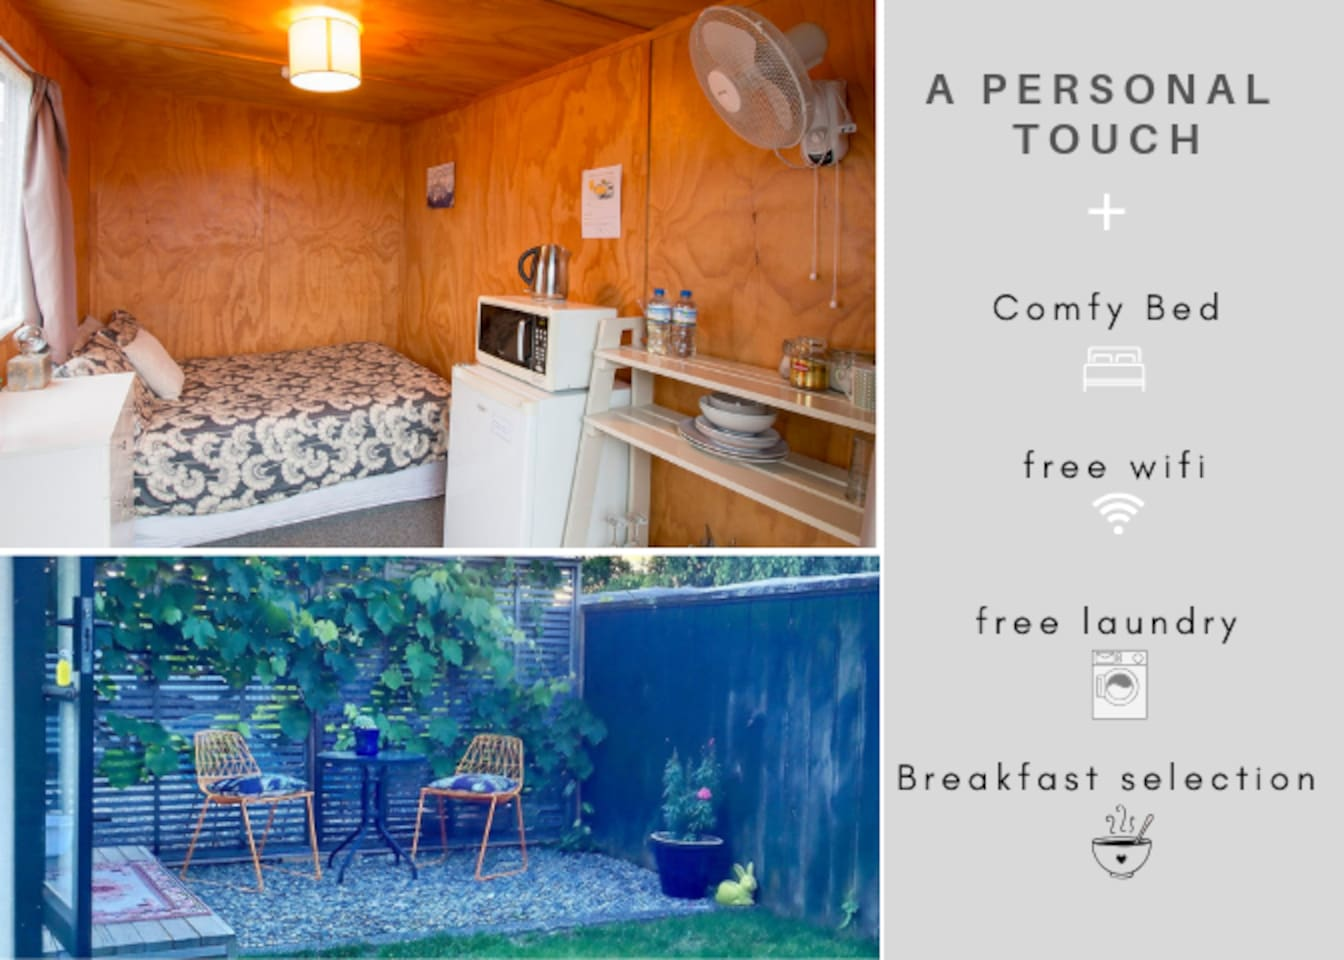 A cabin with a personal touch, comfy bed, free wifi and laundry and a fantastic breakfast selection